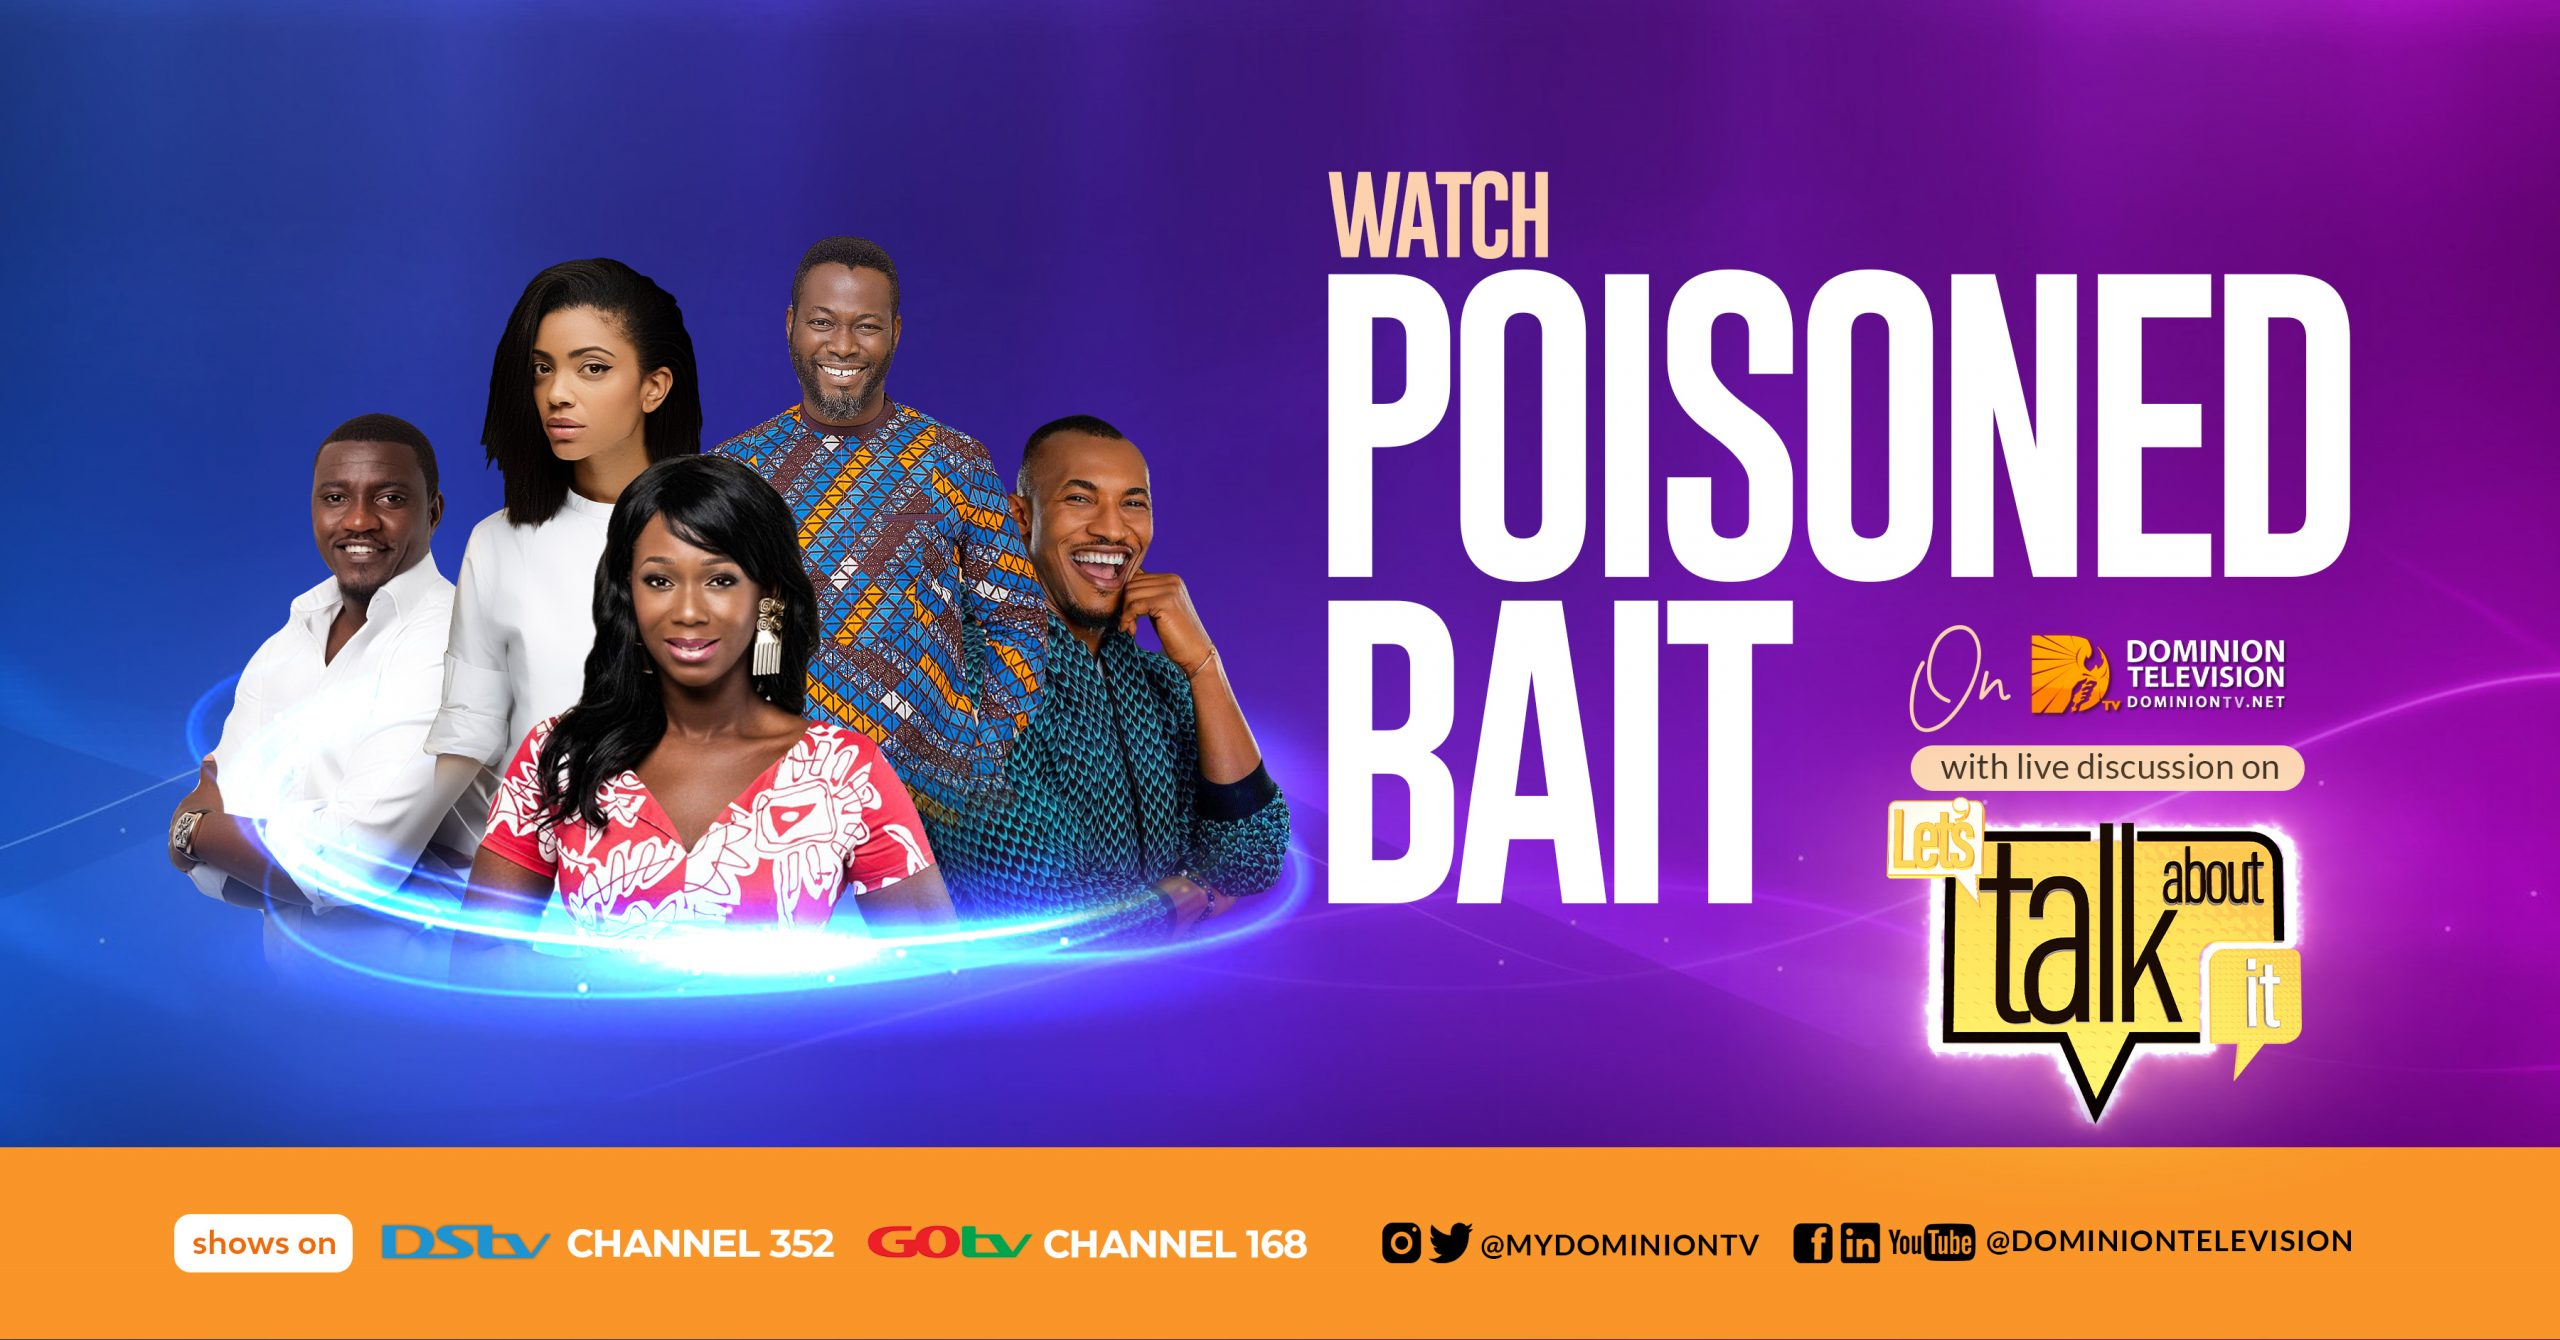 """Watch """"Poisoned Bait"""" on Dominion Television, DStv 352 or GOtv 168 with live discussions on """"Let's Talk About It"""""""